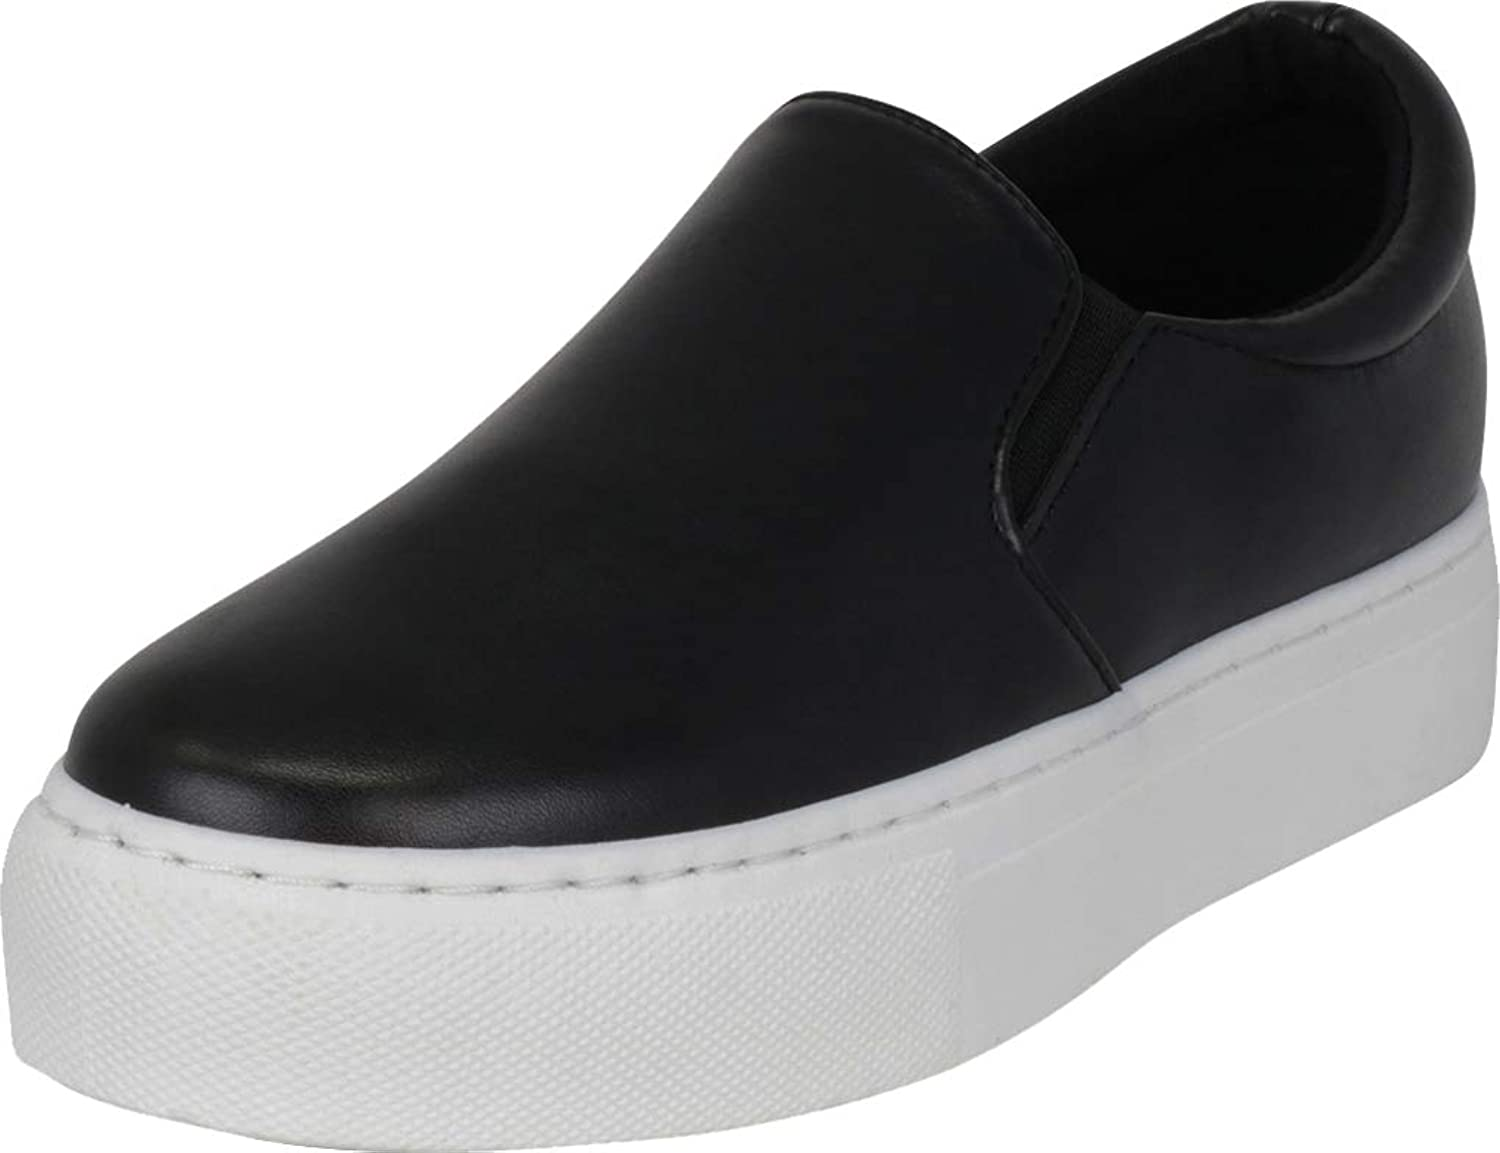 Cambridge Select Women's Slip-On Platform Flatform Fashion Sneaker